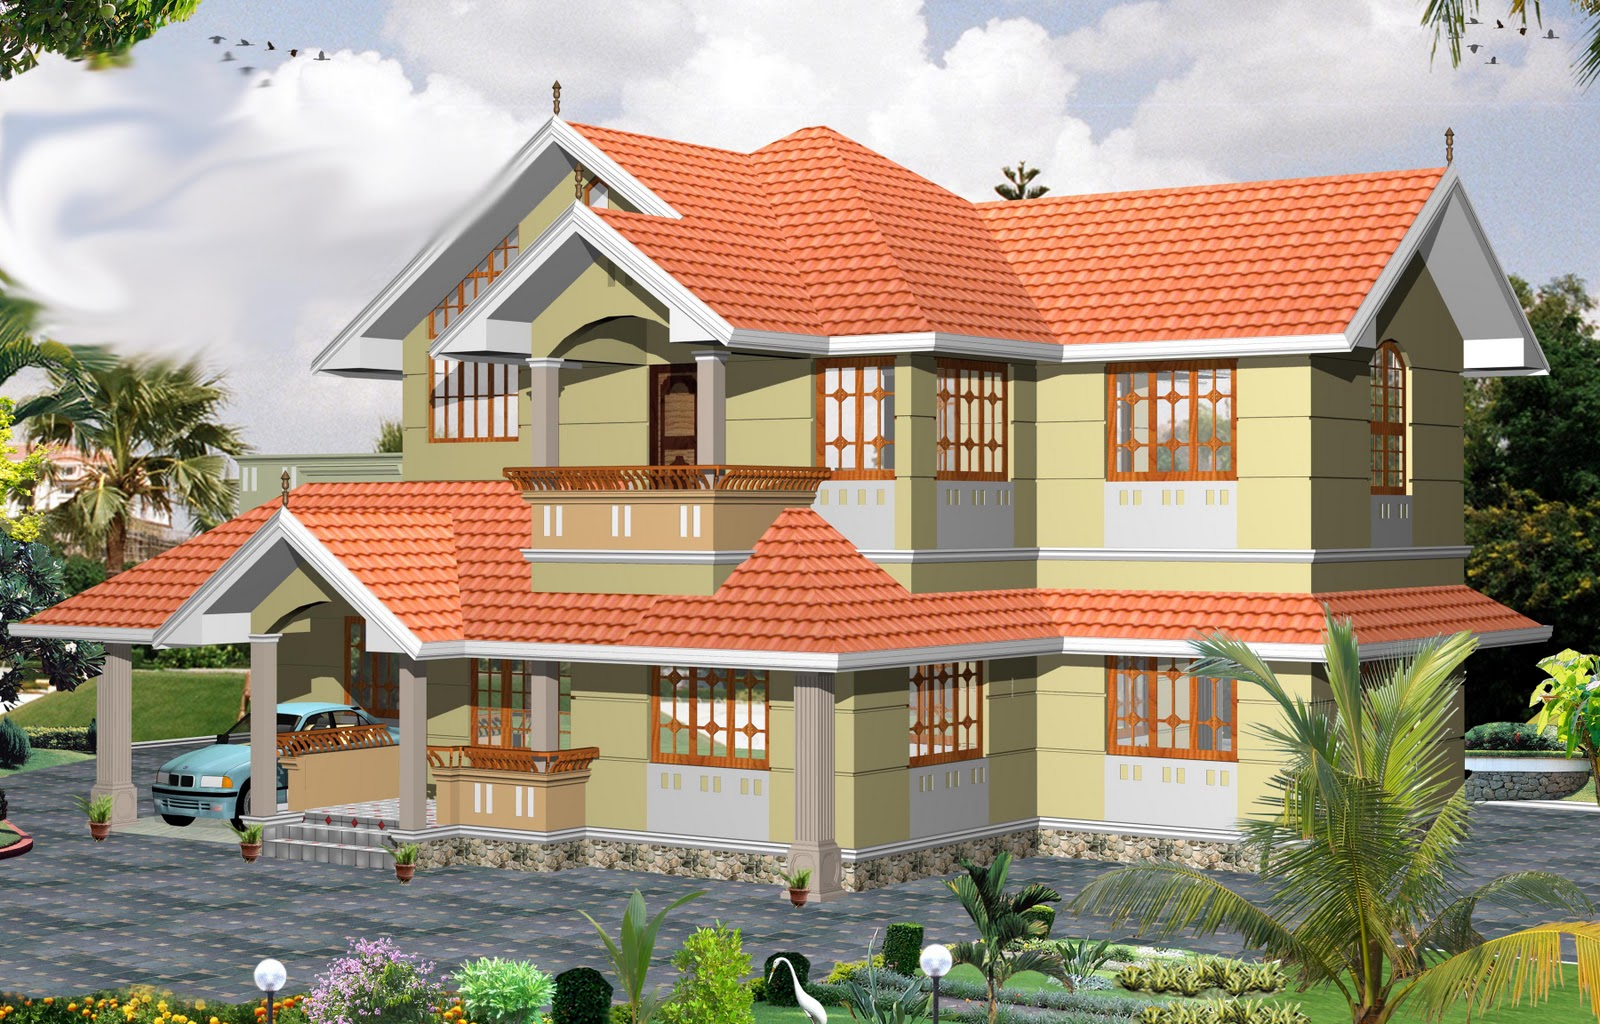 Kerala House Photos http://keralabuildingconstruction.blogspot.com/2011/07/2000-sqft-3bhk-house-plan-kerala-home.html